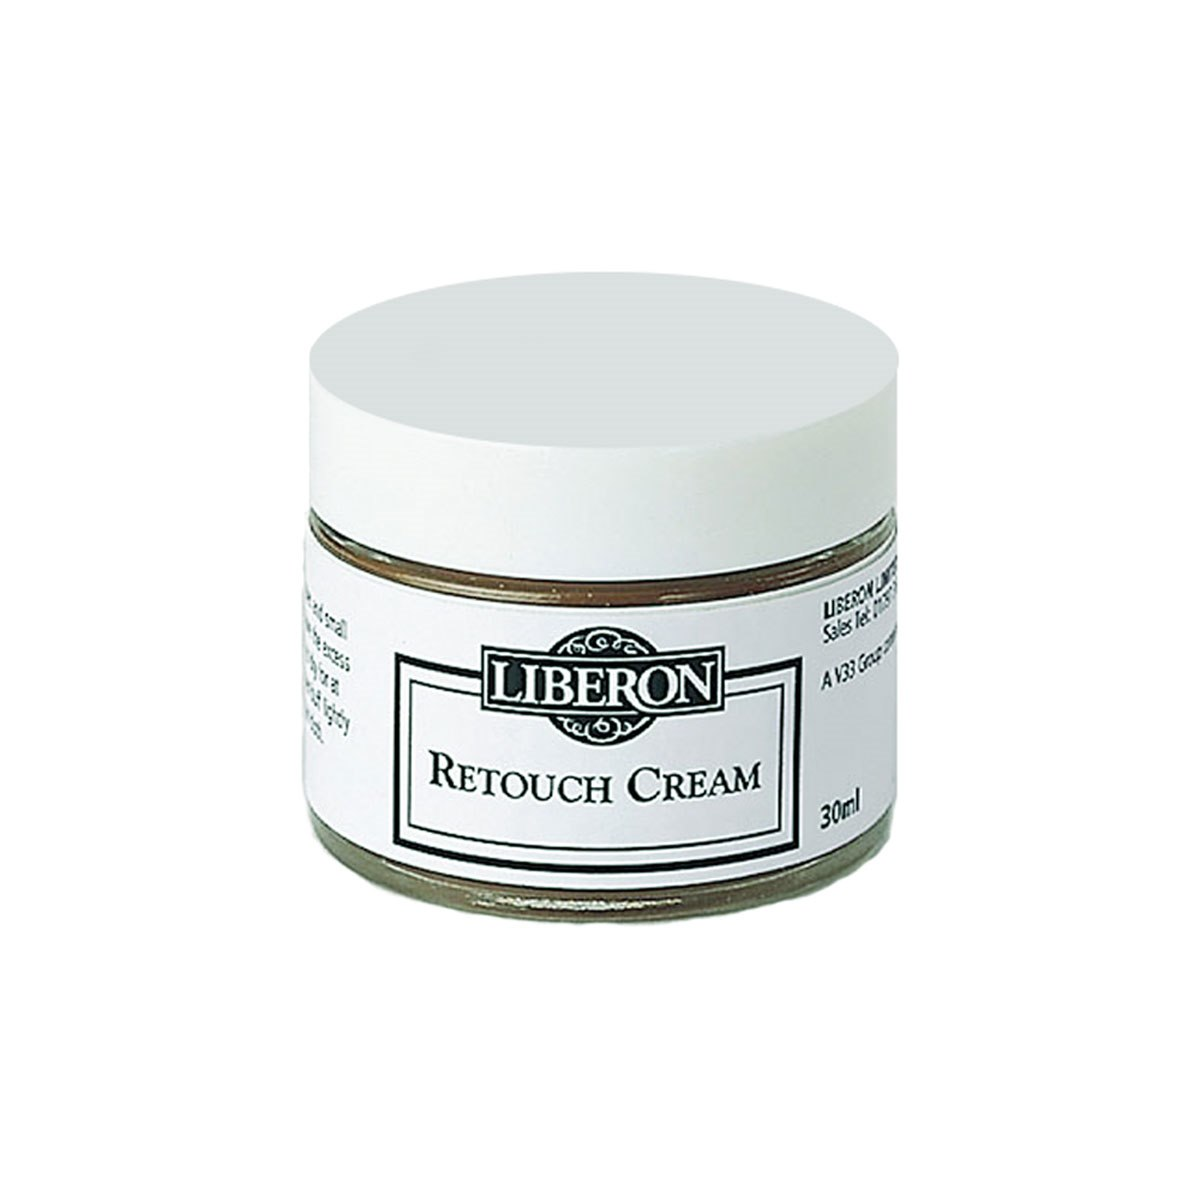 Liberon Retouch Cream Dark Mahogany 30ml